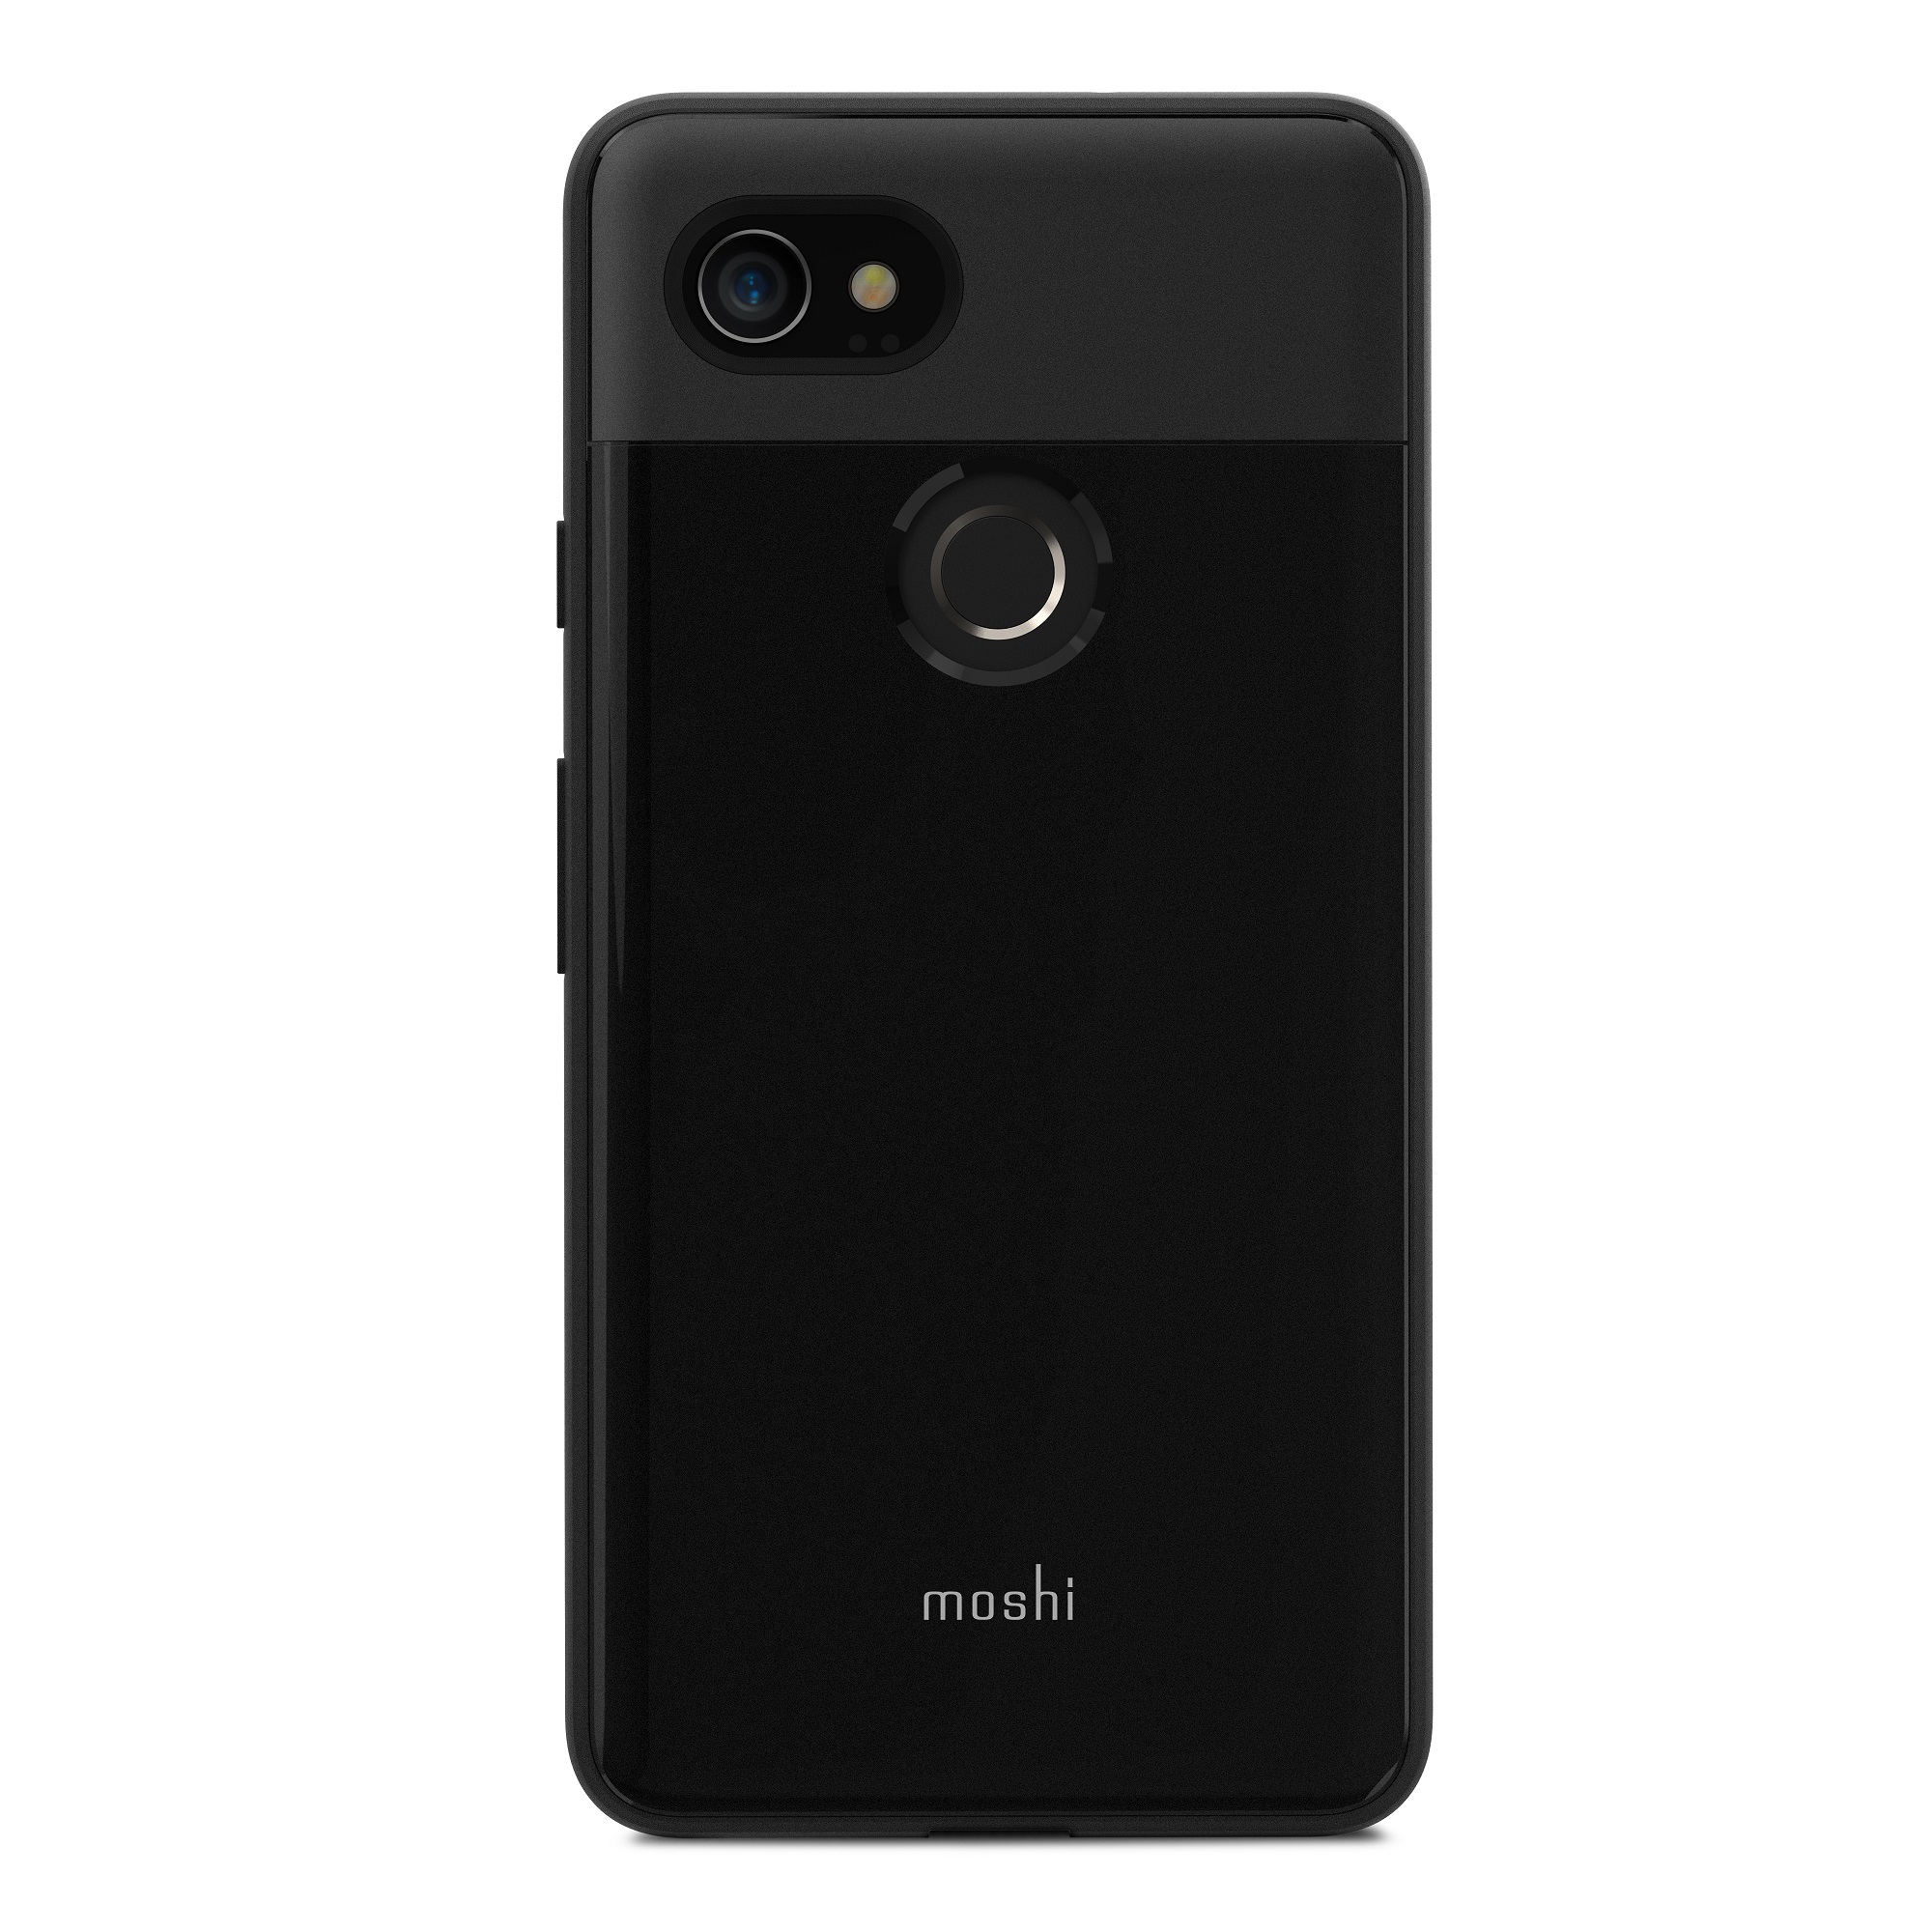 Moshi Tycho Case for Google Pixel 2 XL